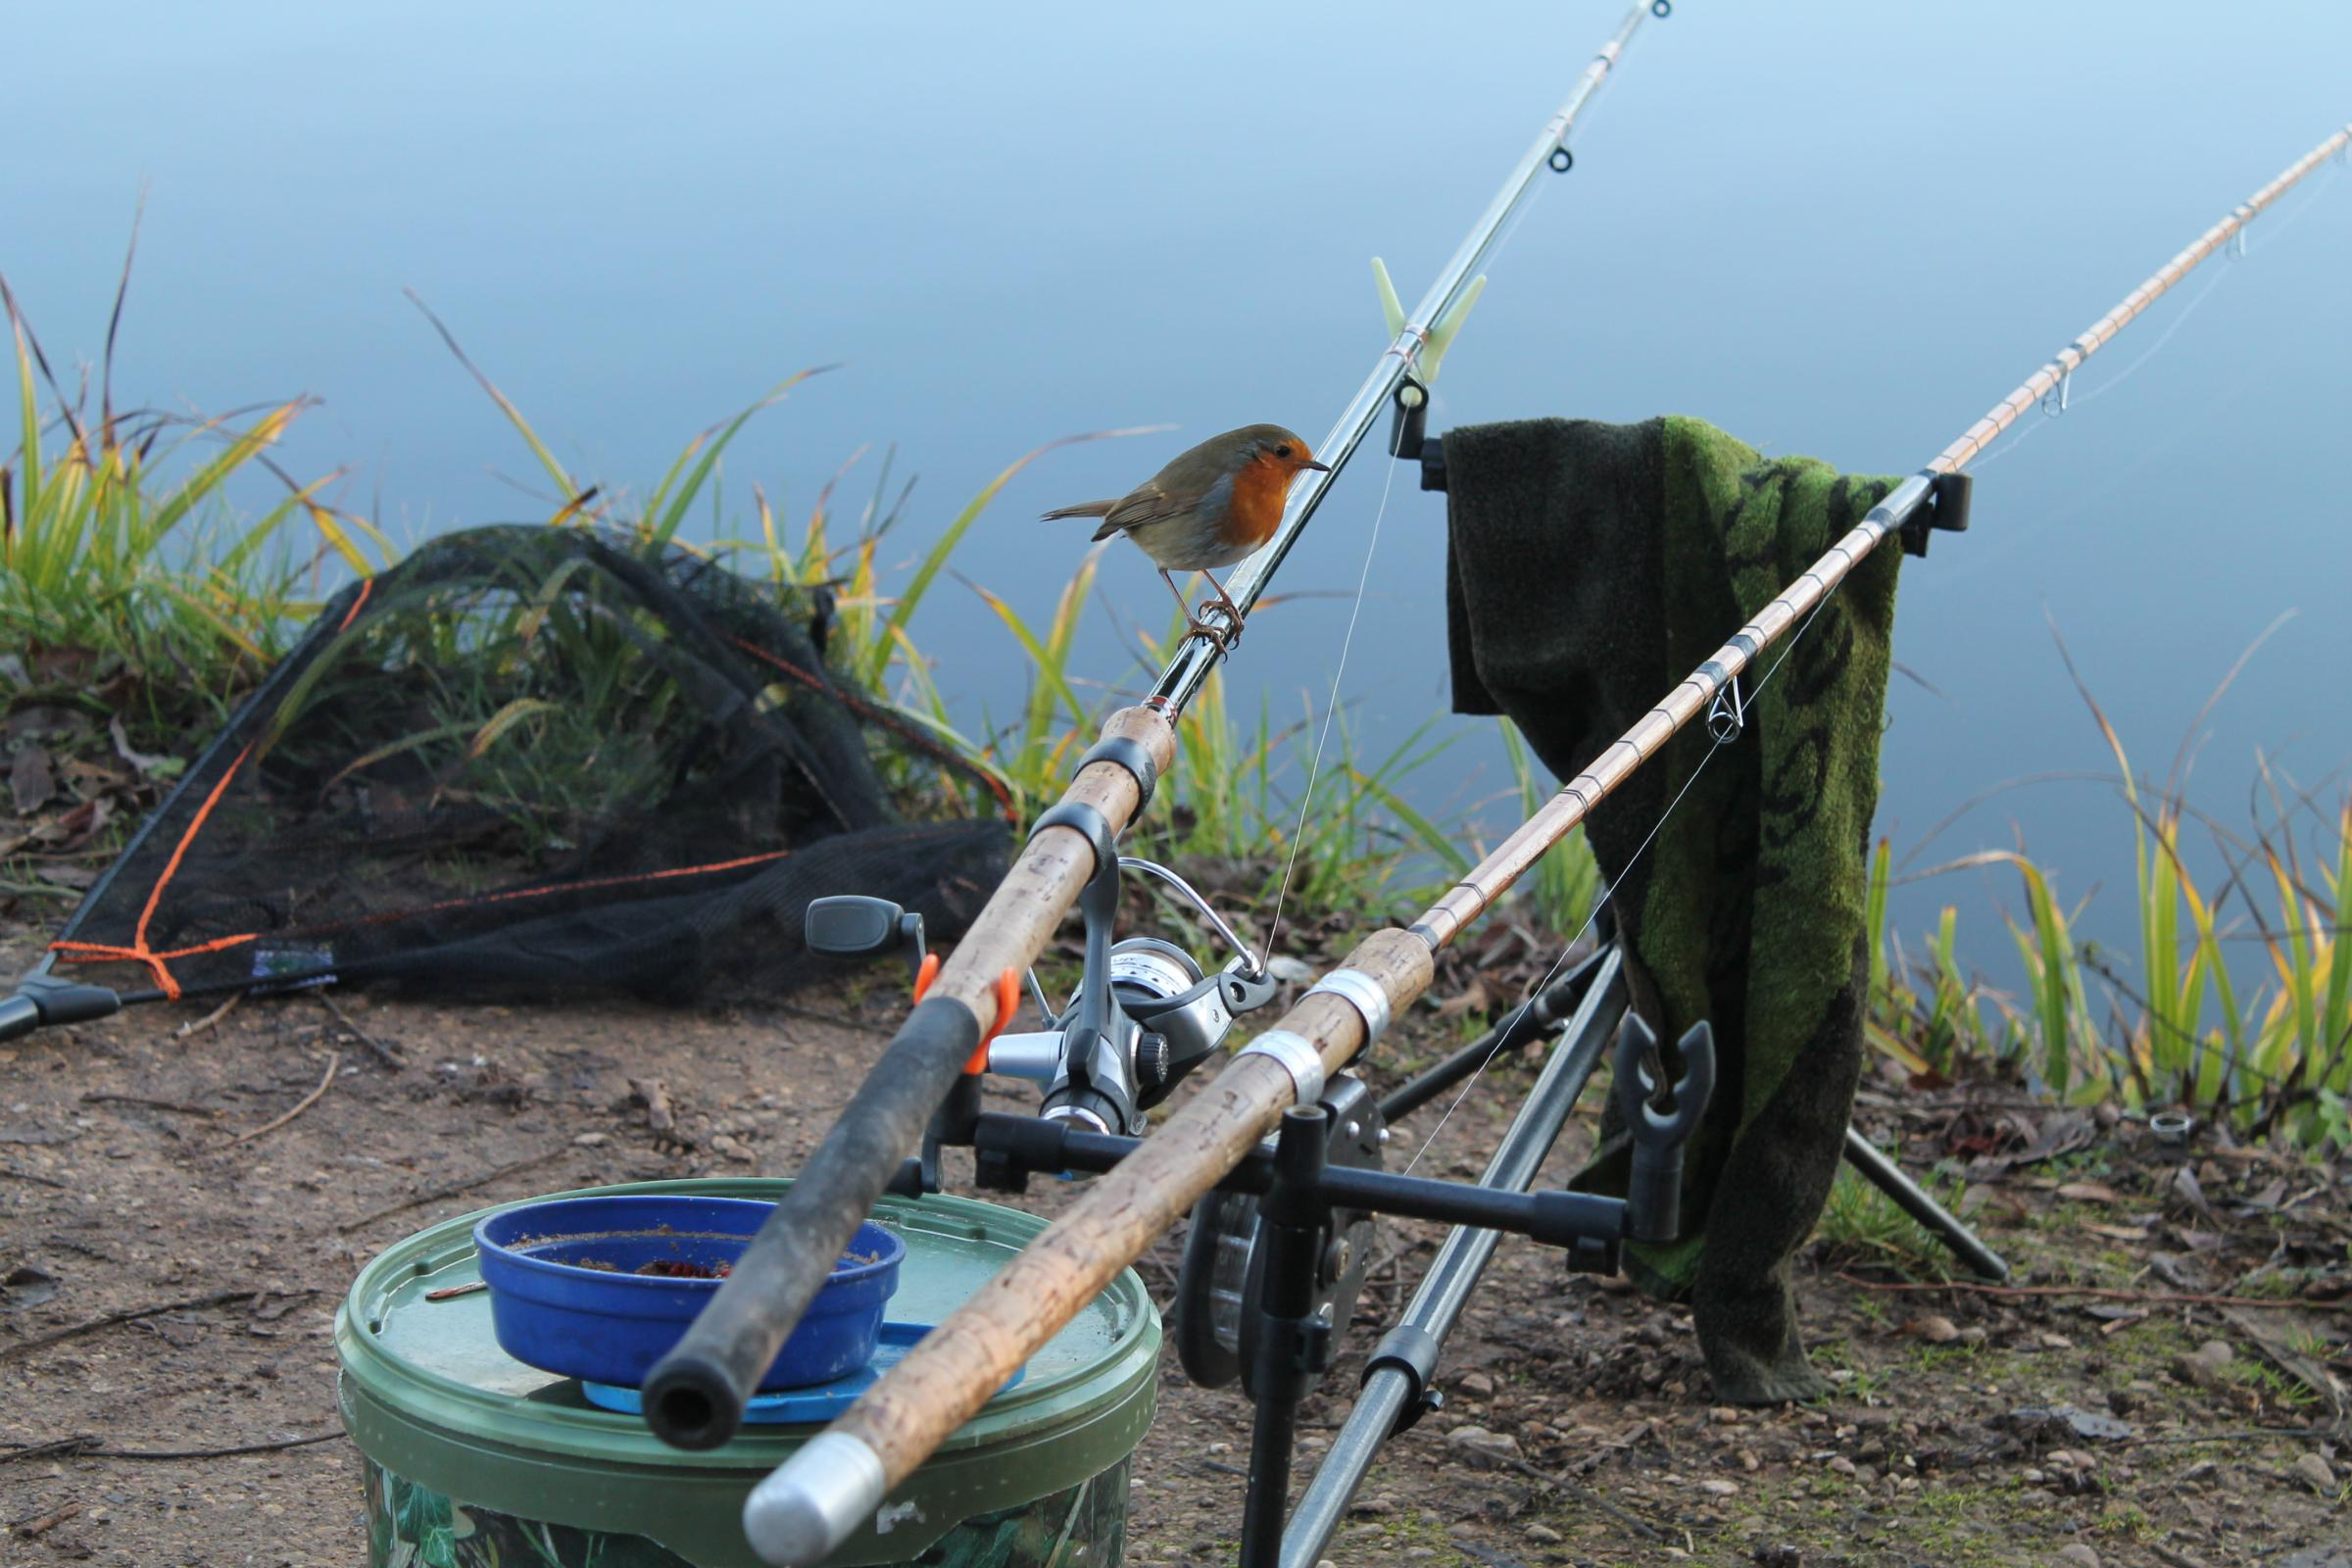 From: Alan Goodchild [] .Sent: 06 January 2015 14:55.To: MS-Oxford Editorial.Subject: Robin..Please see attached copy of picture of robin sitting on my fishing rod.. .Mr Allan Goodchild.date of birth 08. 08. 1948